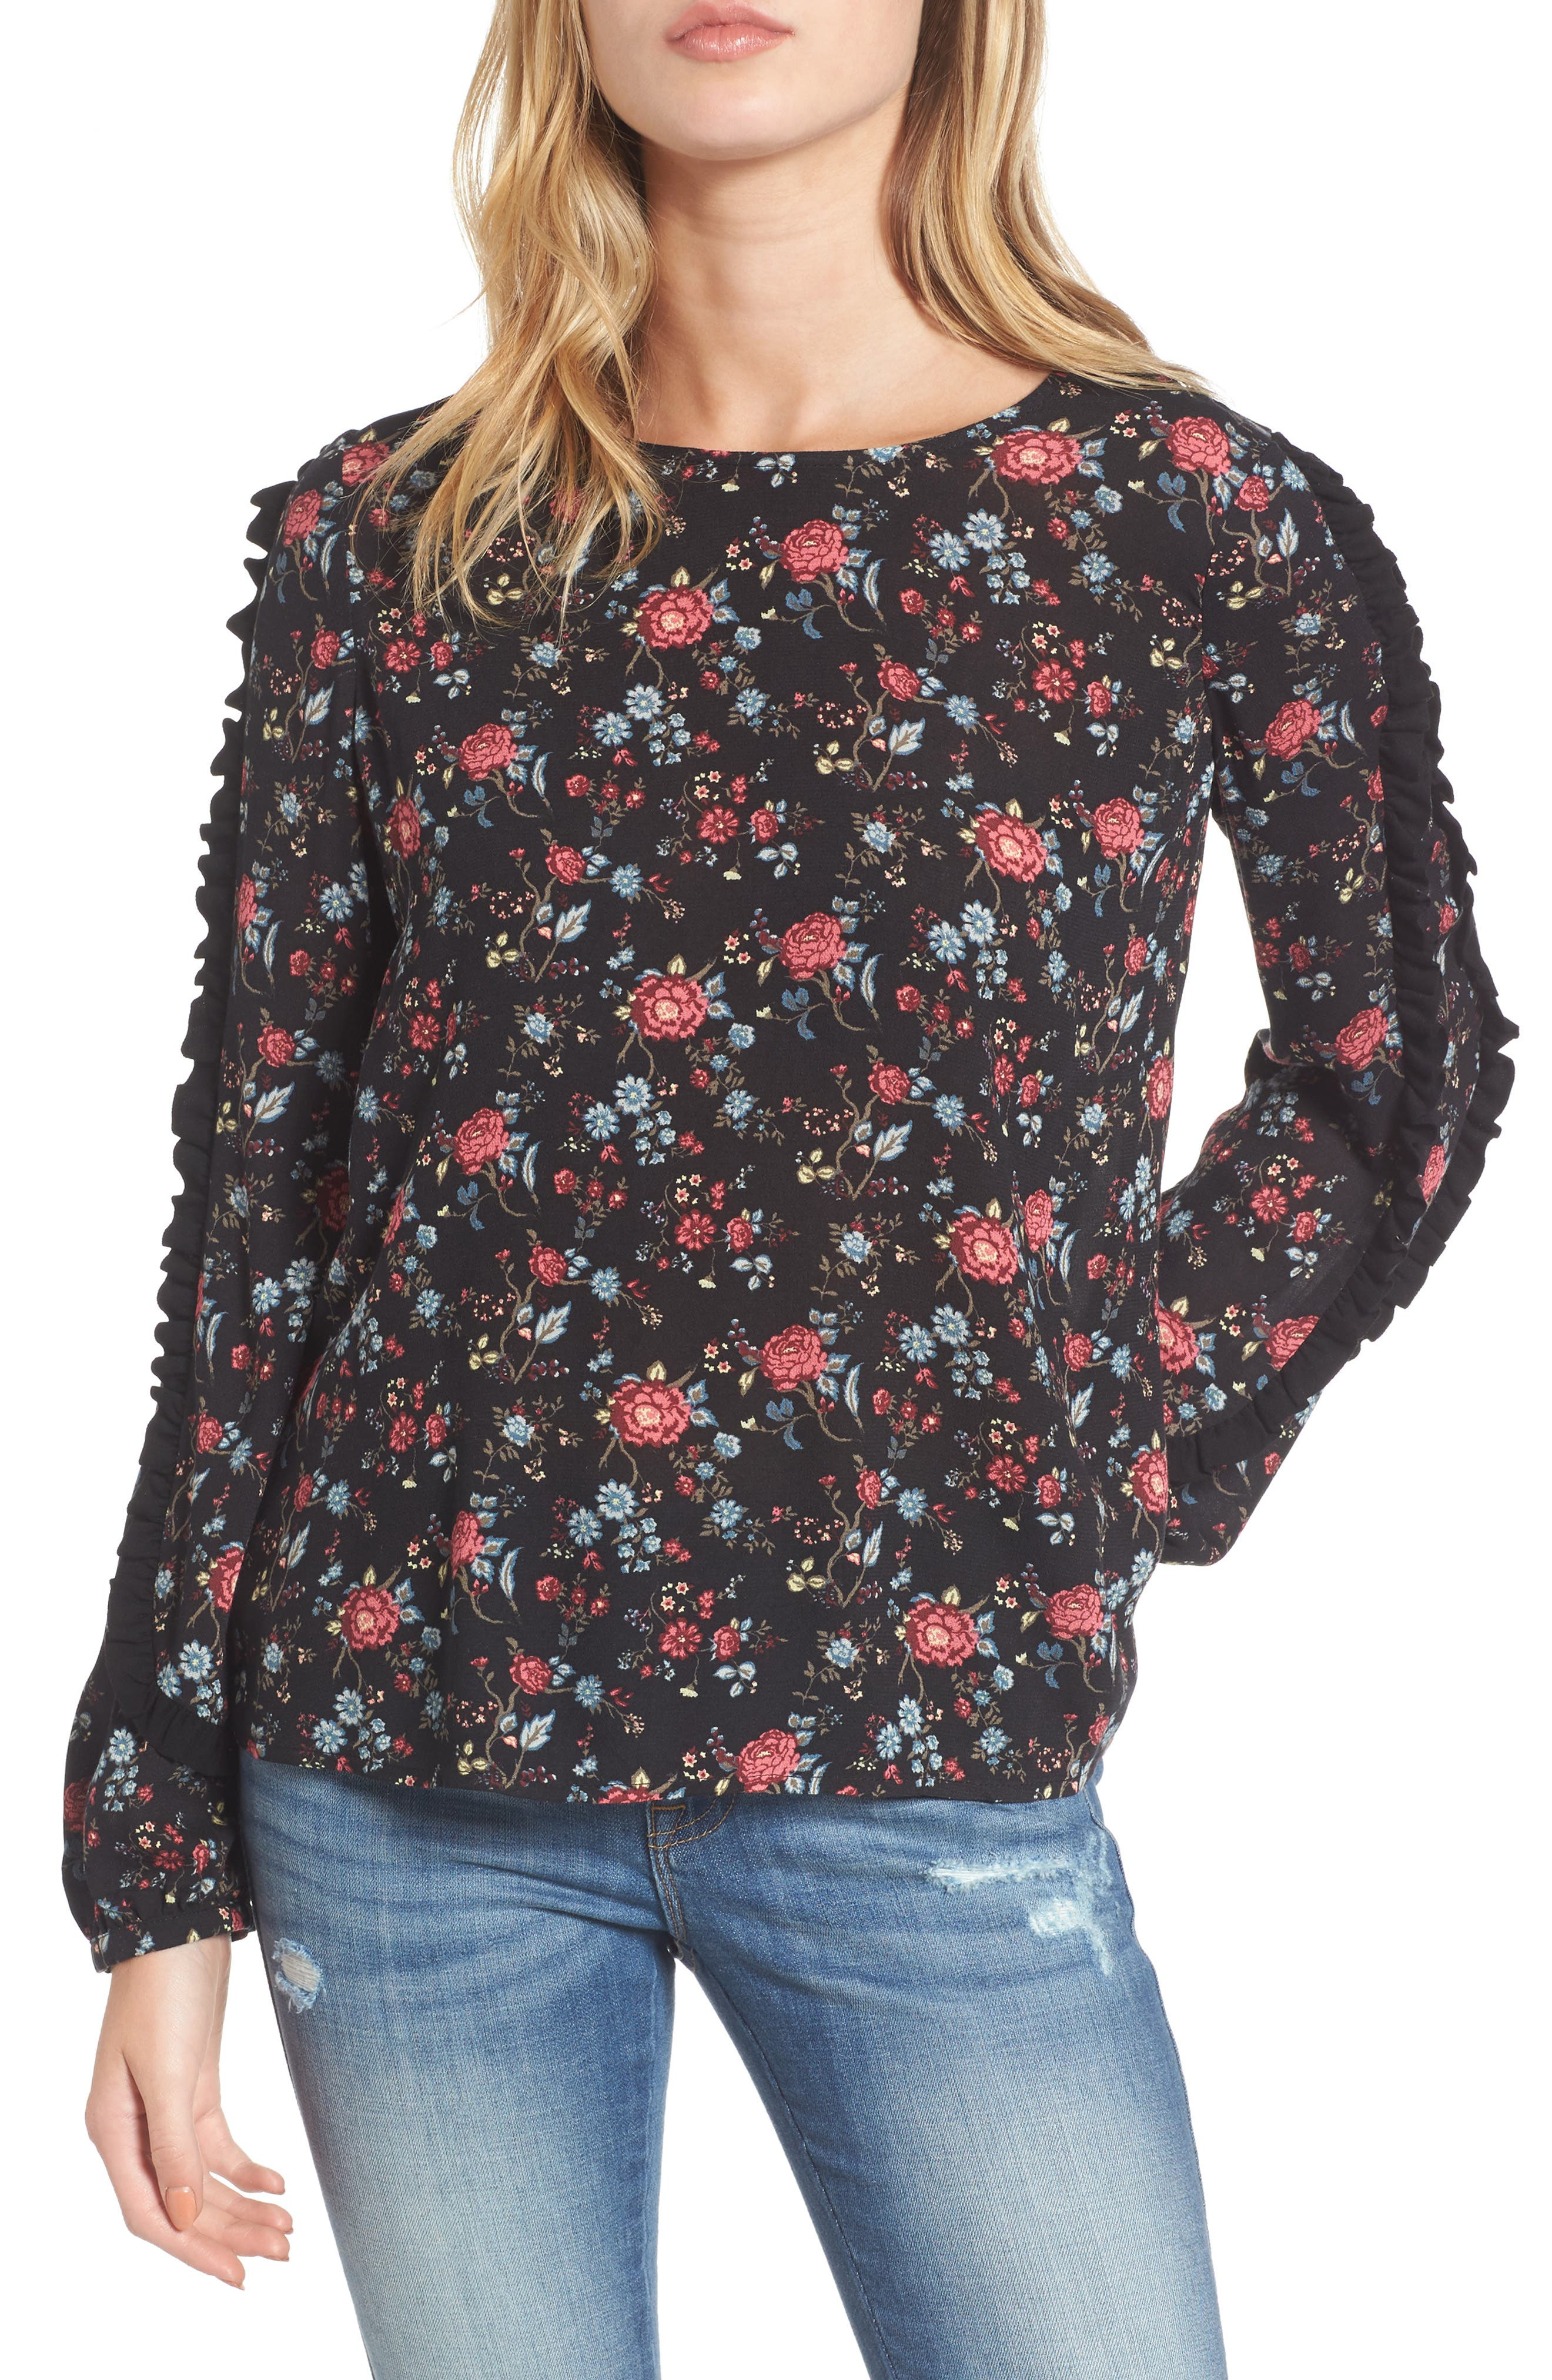 Alternate Image 1 Selected - BP. Ruffle Trim Floral Print Top